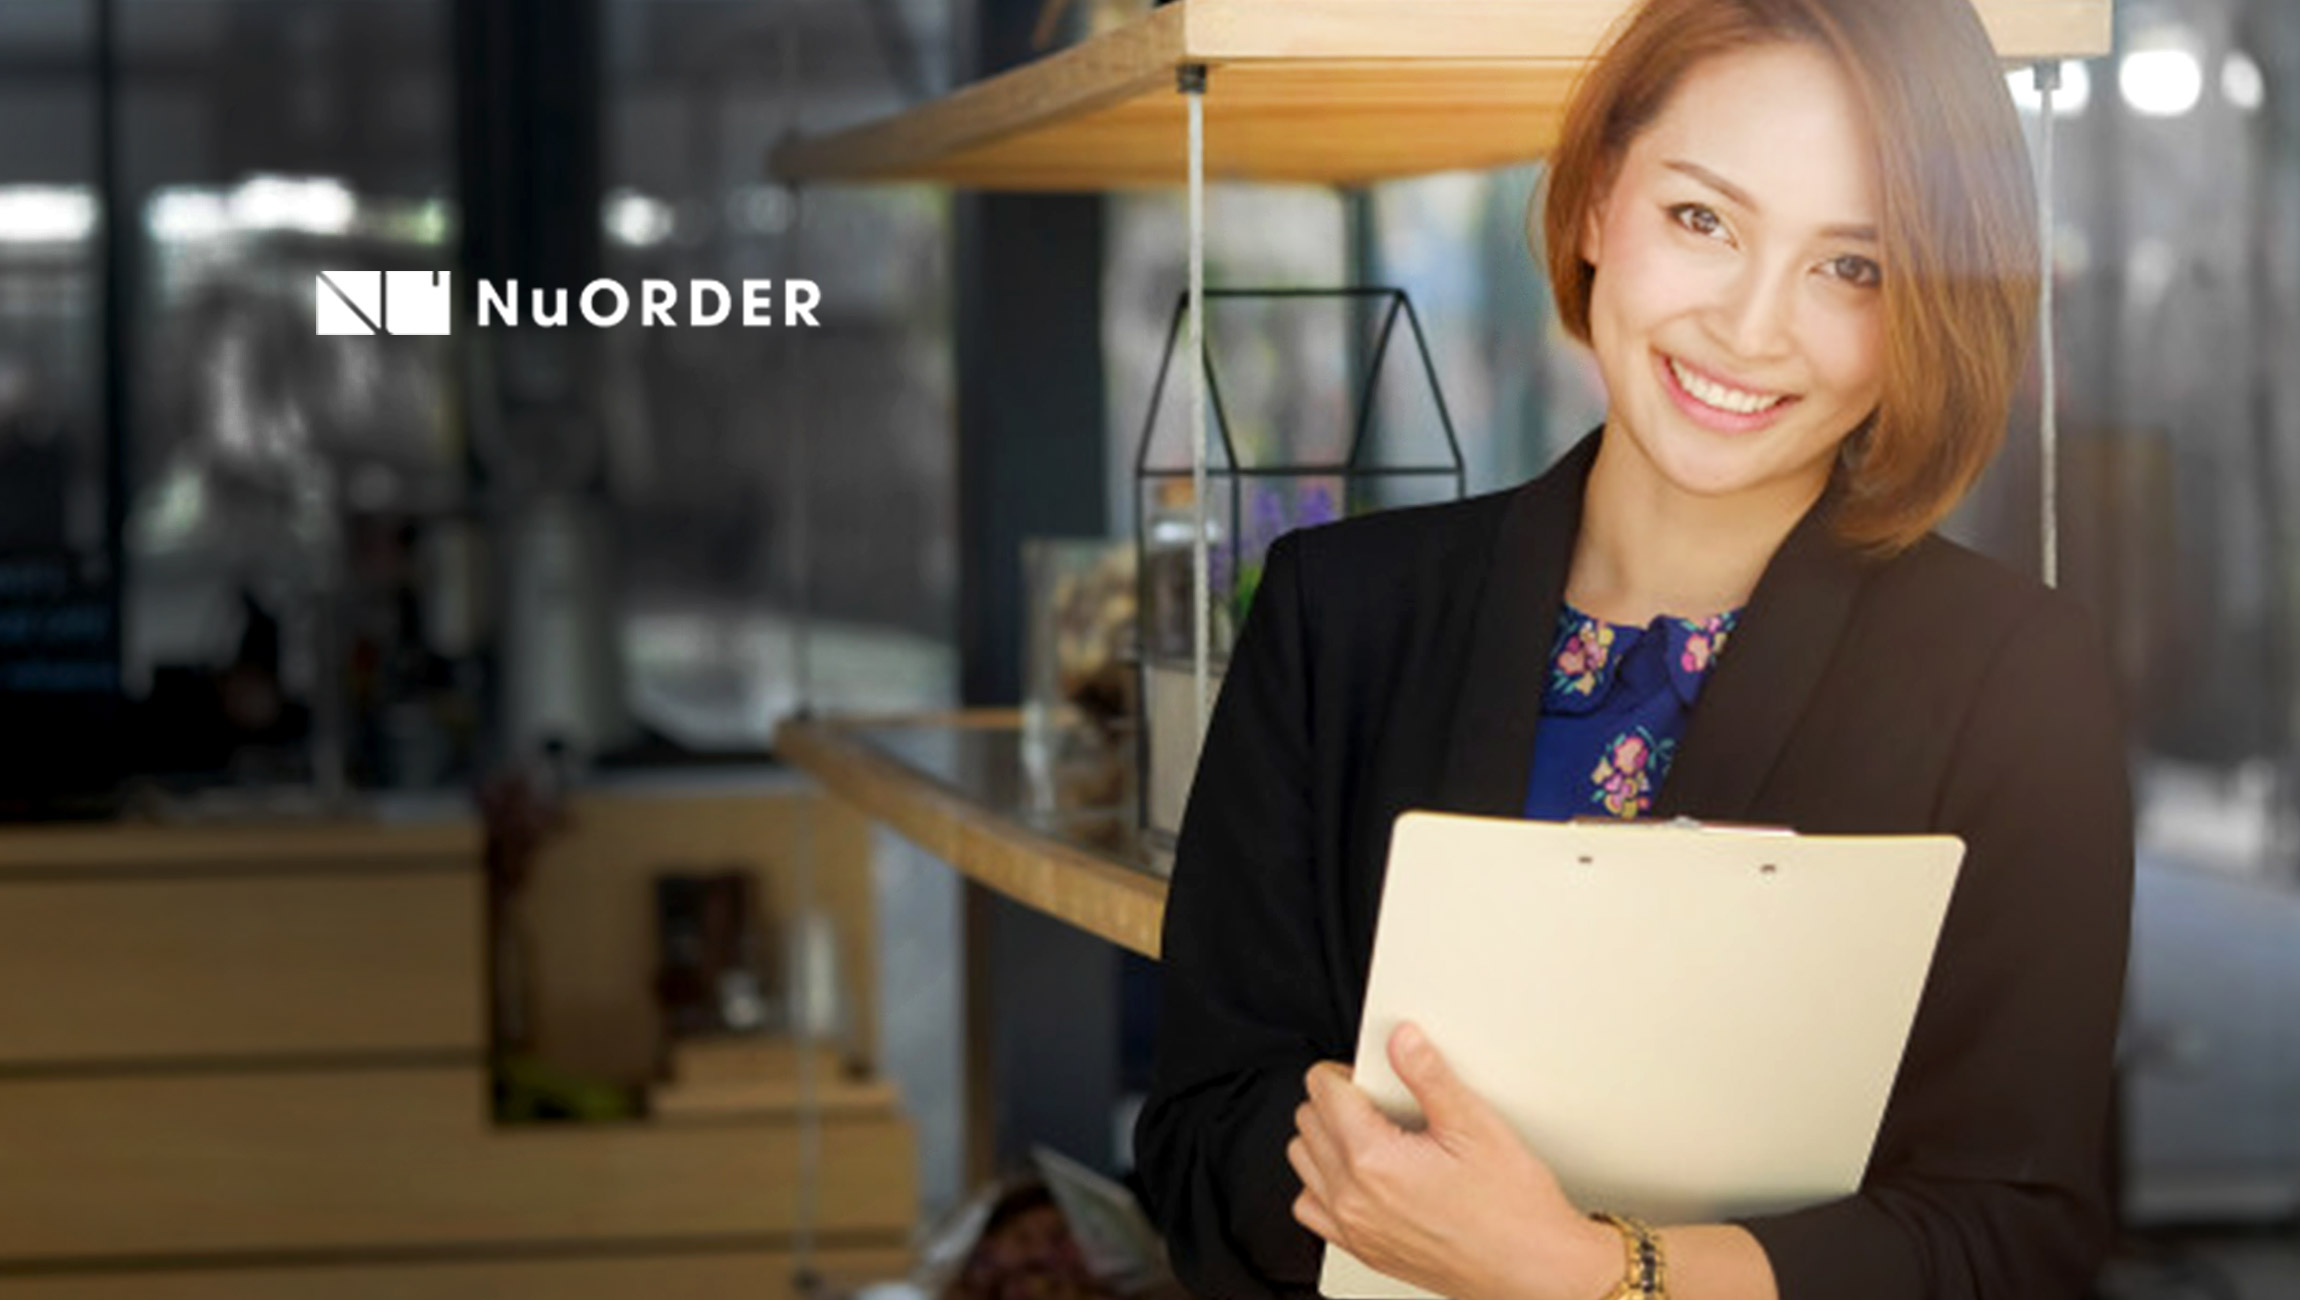 NuORDER Secures $15 Million Funding to Accelerate B2B eCommerce